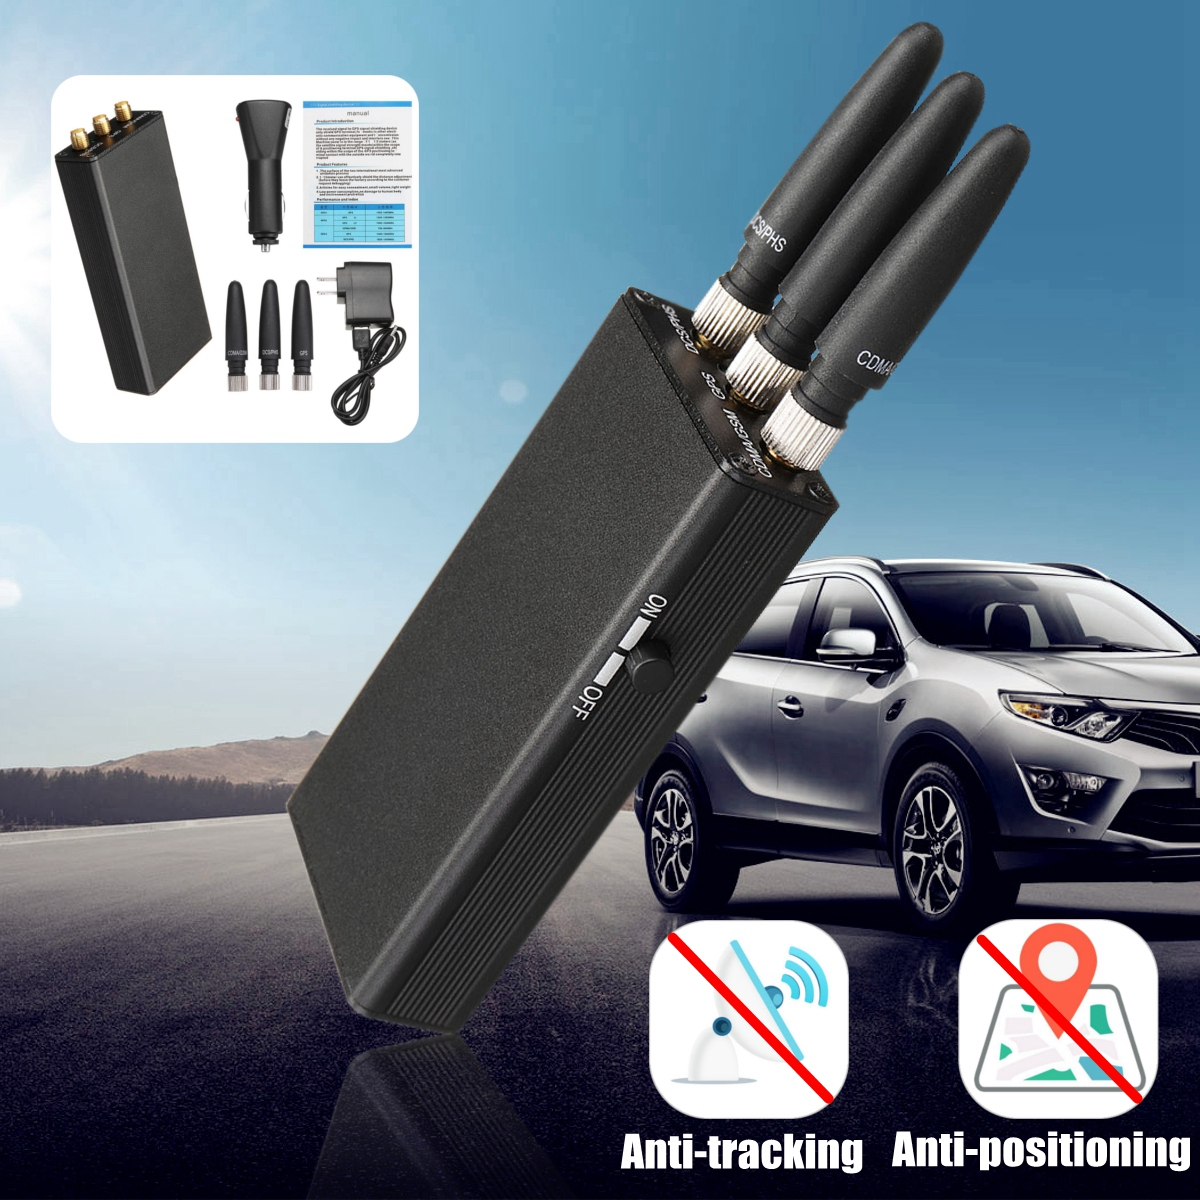 Handheld Car Gps Mobile Phone Signal Isolator Jammer Uq Mixed Shopping Art Bosch Headlight Relay Wiring Diagram Arduino Motor Shield